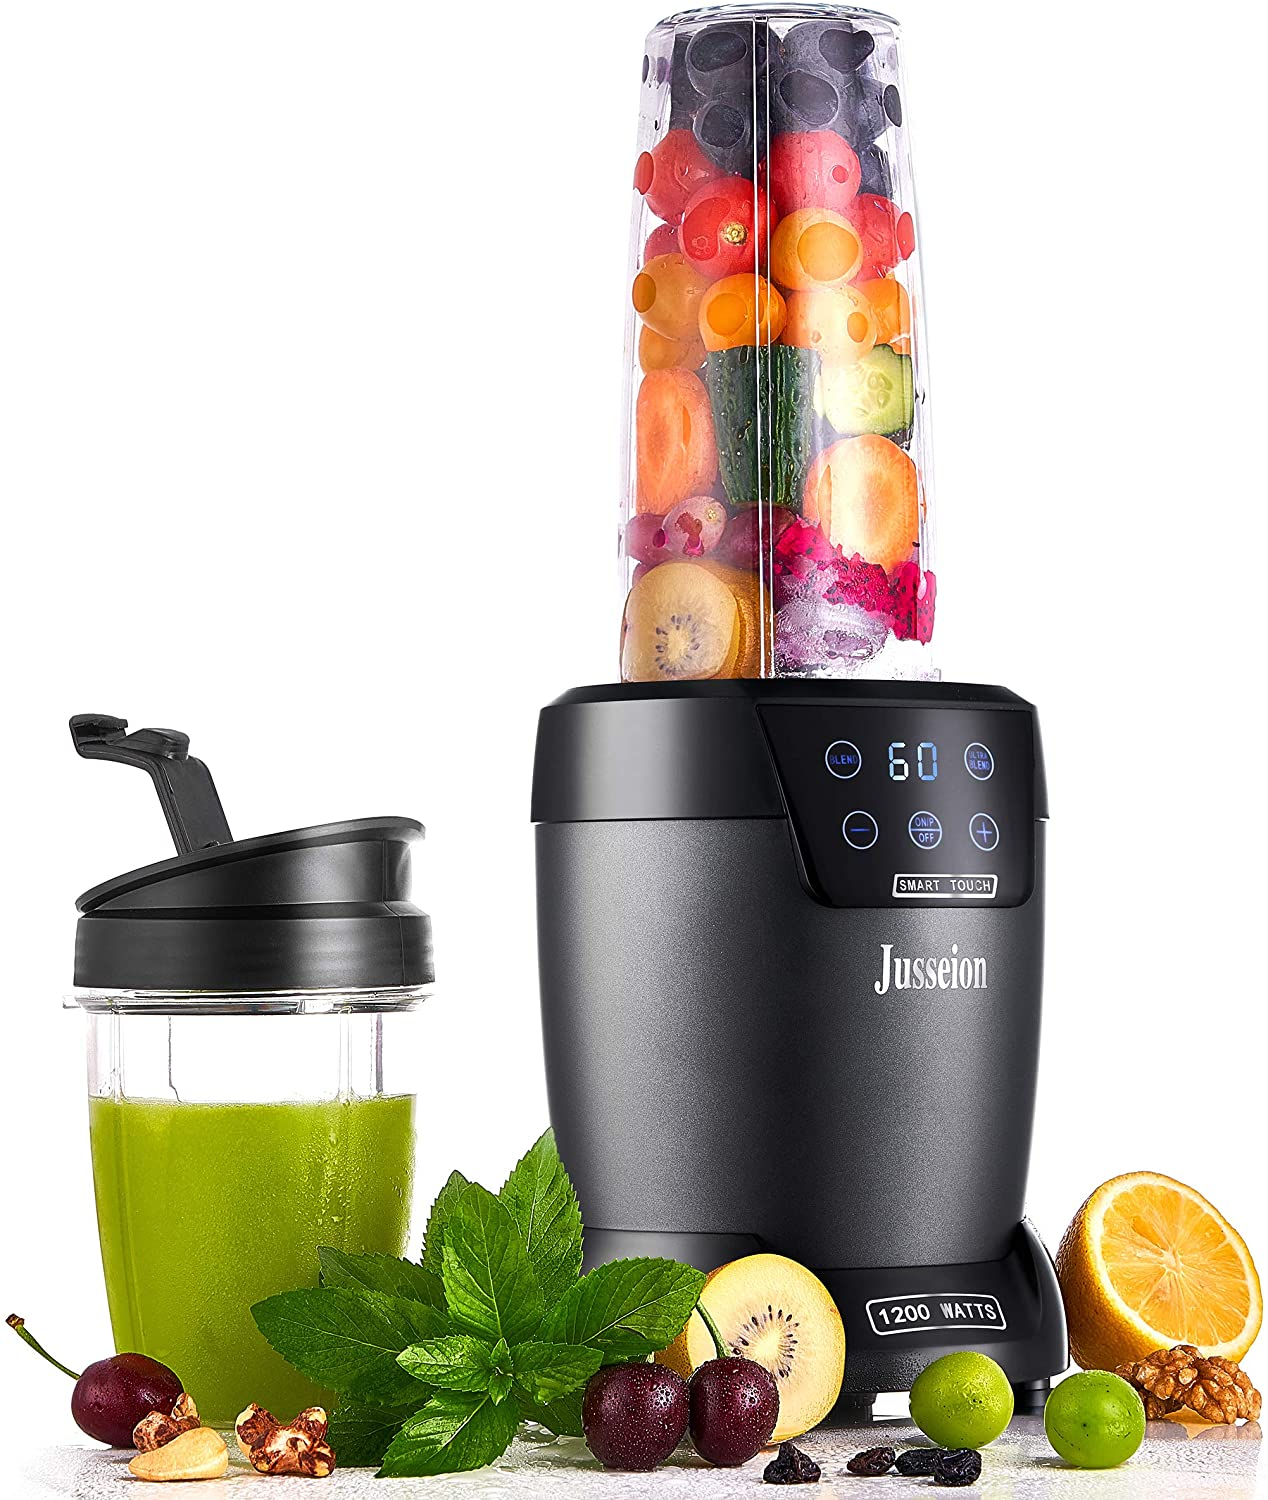 Smoothie Blender, 1200W Personal Bullet Blender for Shakes and Smoothies, Touch Screen with Programmable Digital Count-Down Timer, 18 and 35 Oz On The Go Cups with To-Go Lids, Midnight Blue